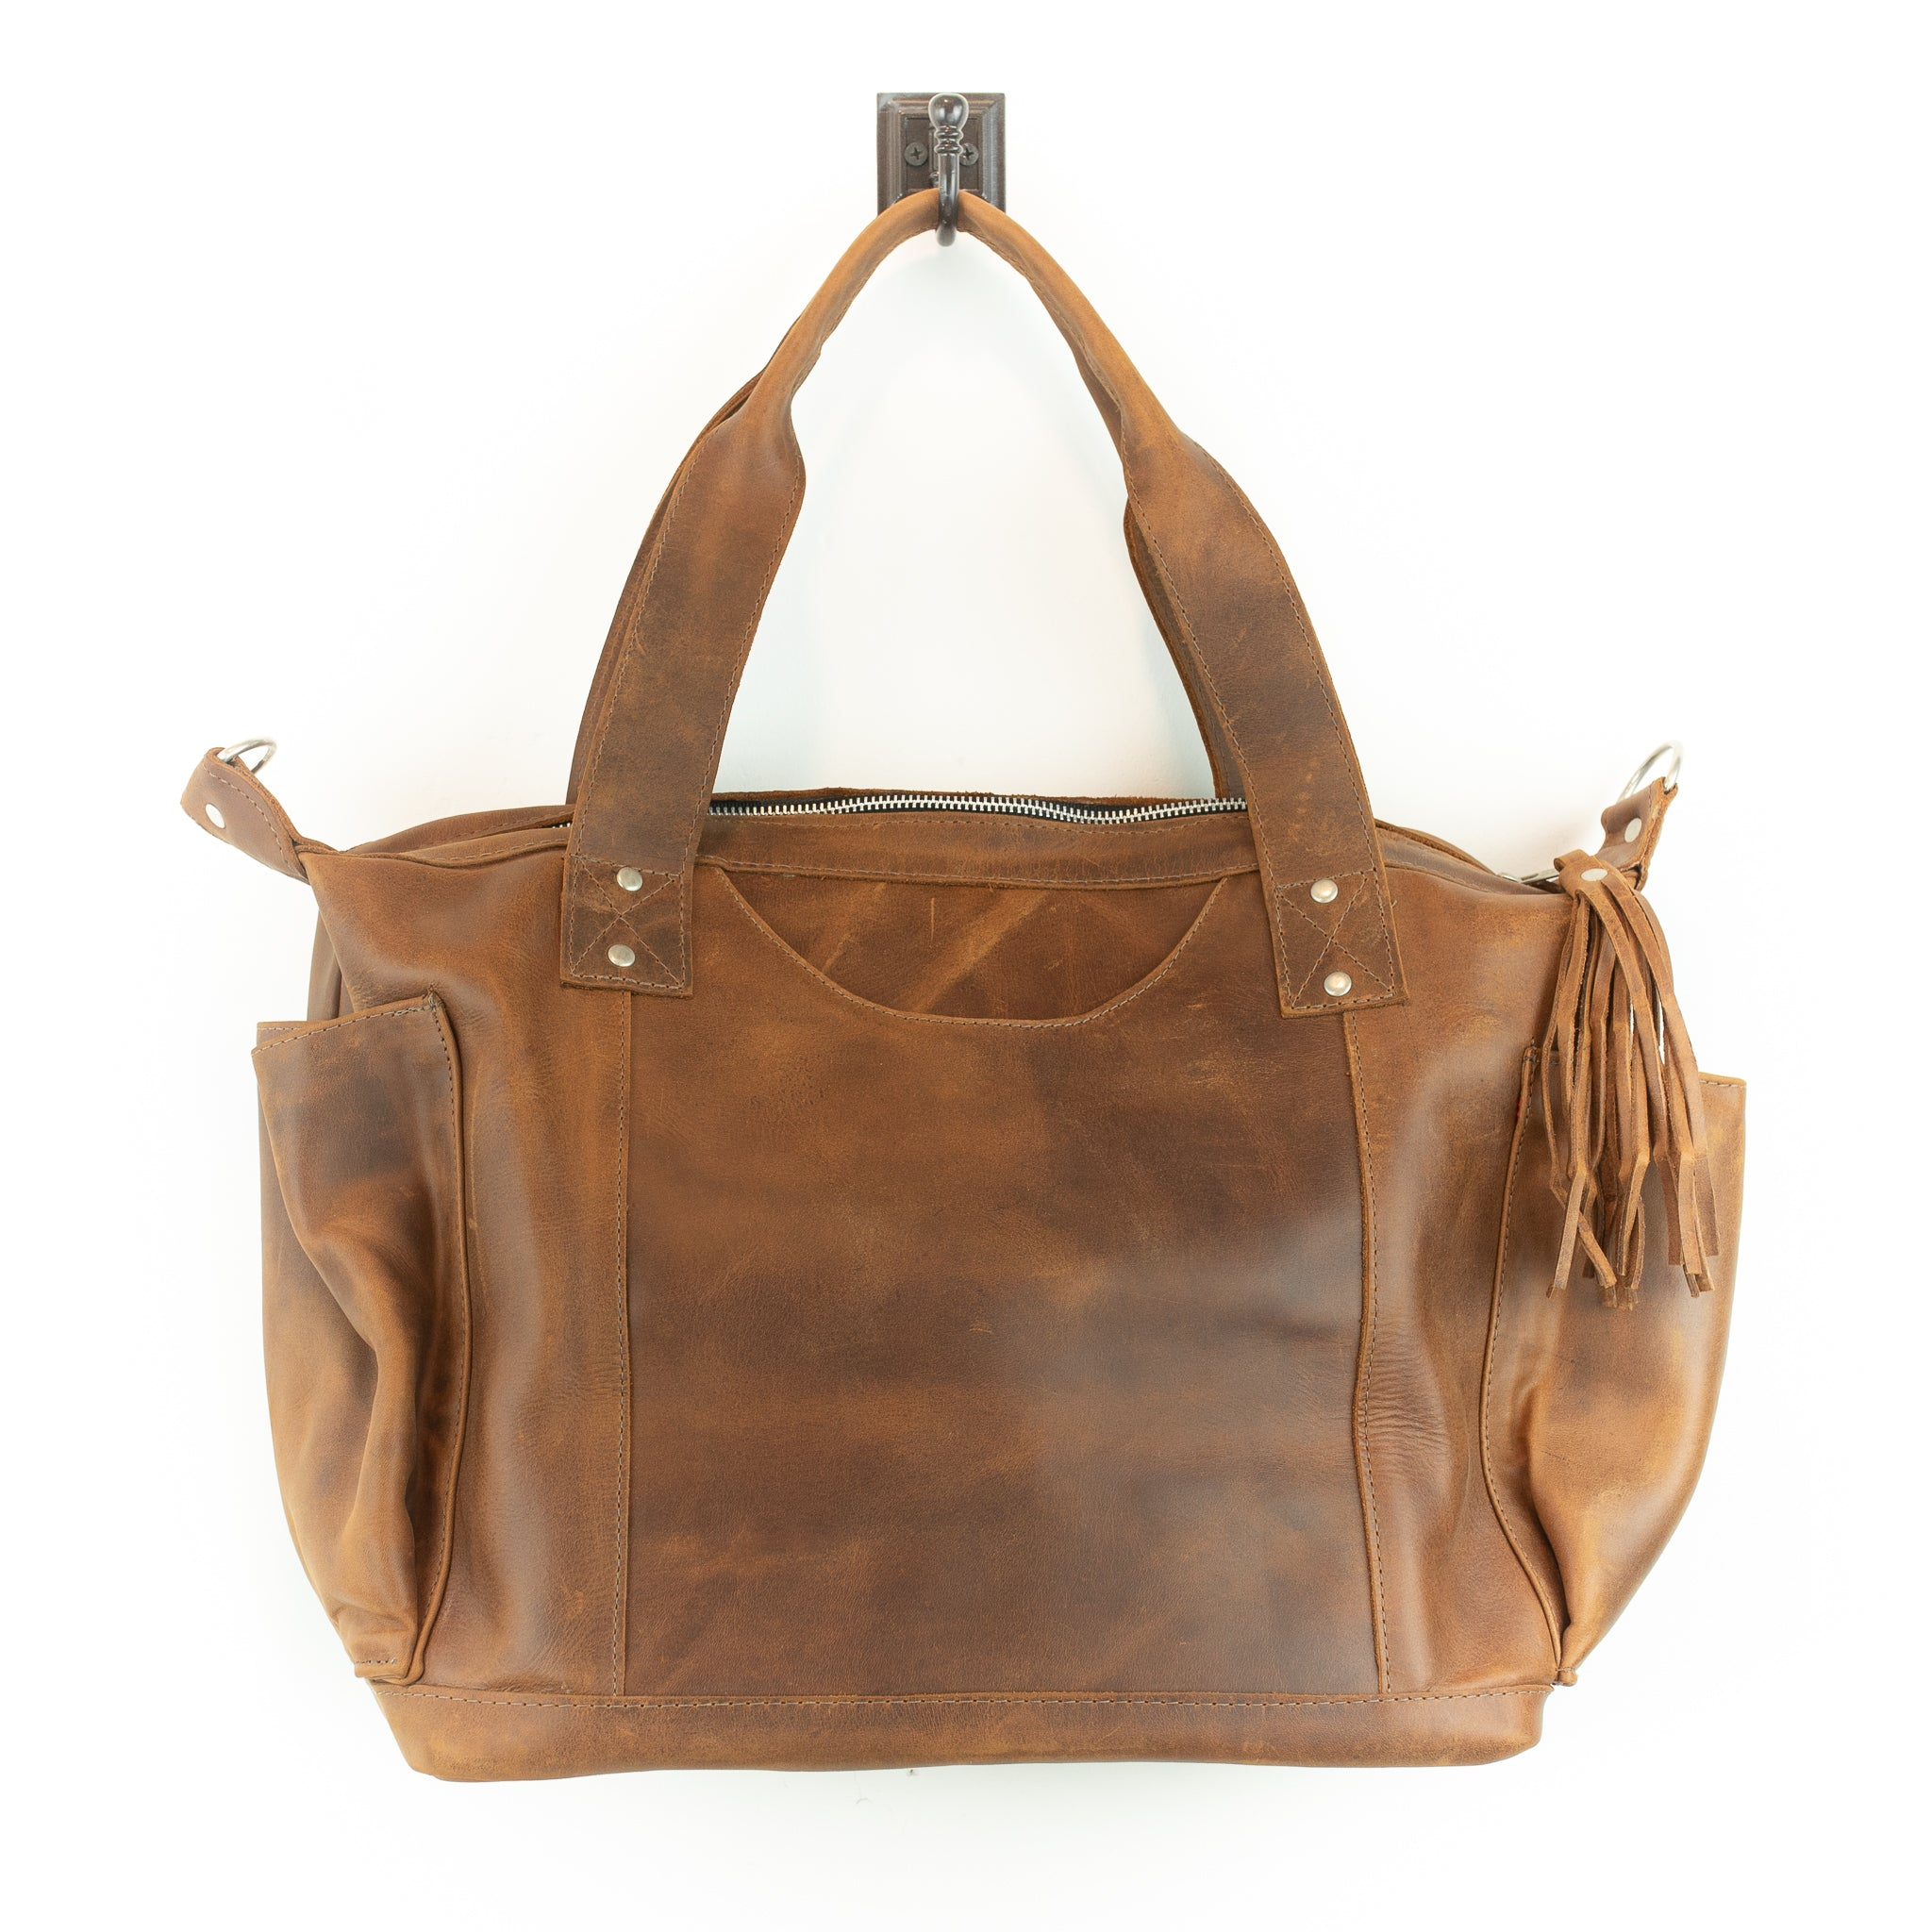 Raquel Convertible Bag *50